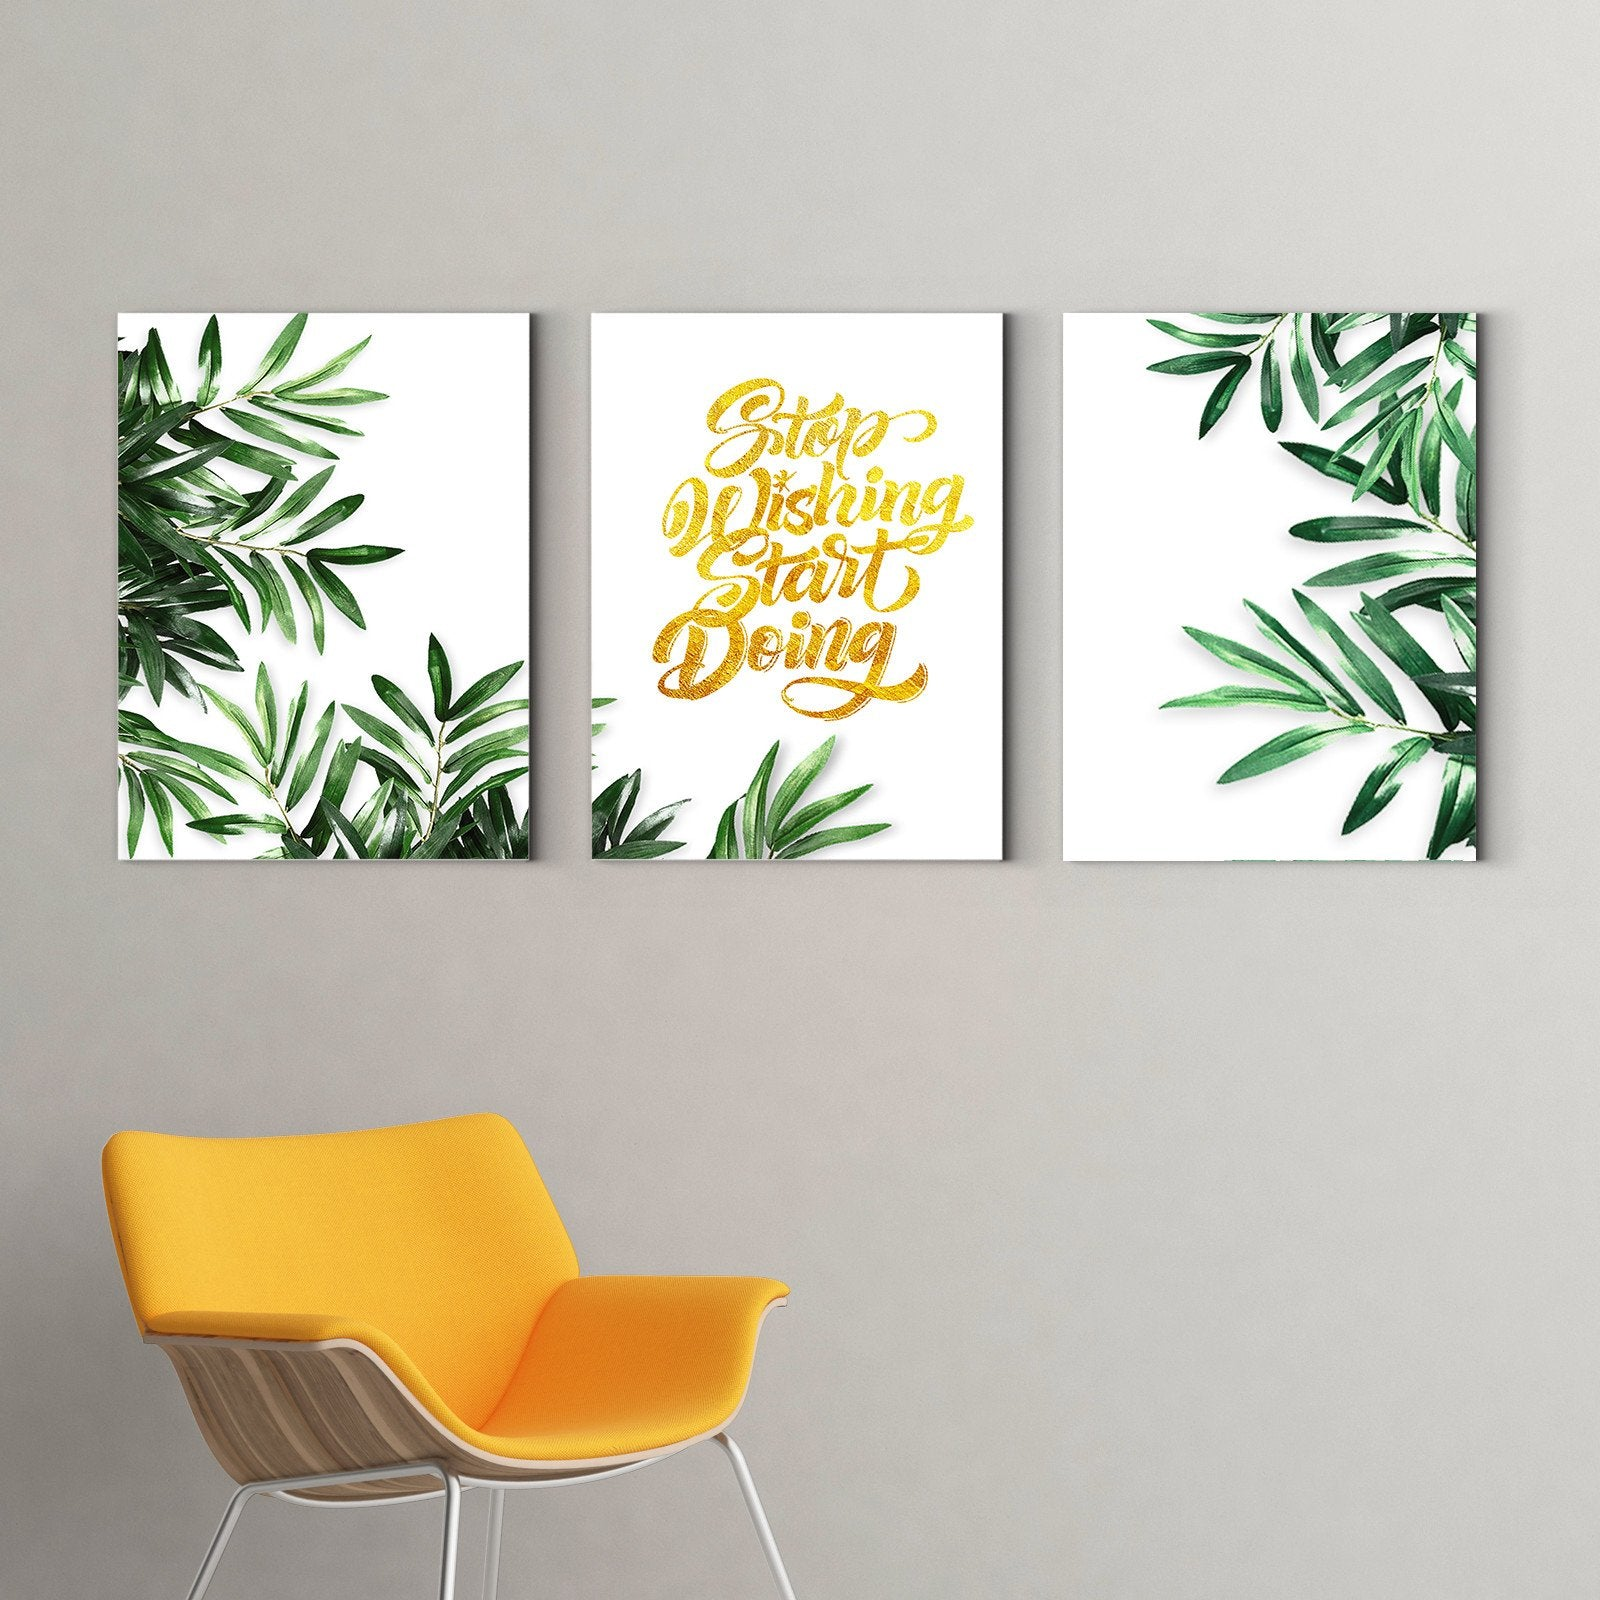 Green leaves under the sun - plant decorative painting - living room-Multi Panel Wall Art023